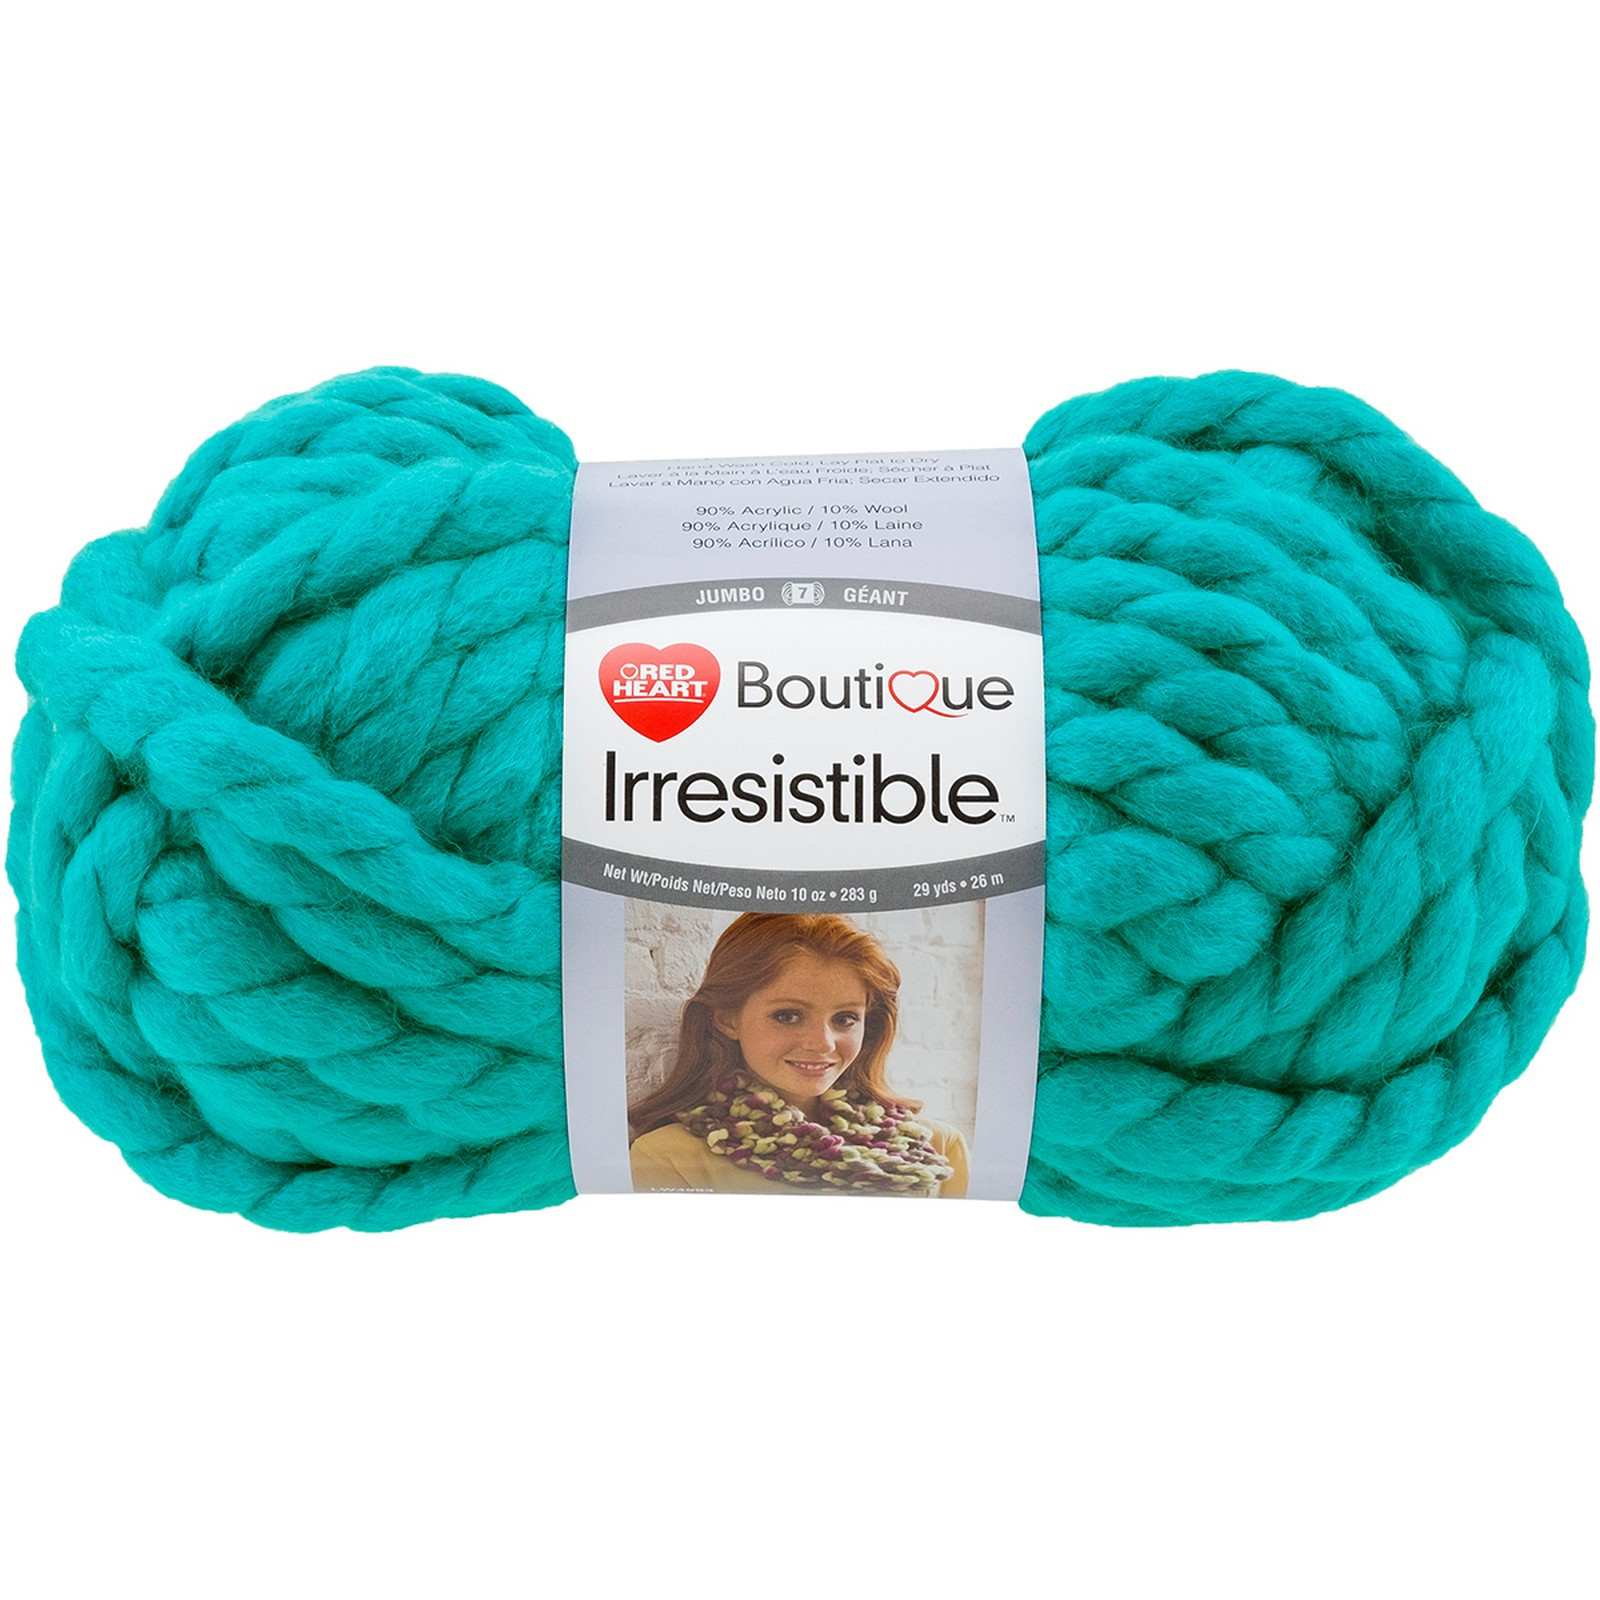 Red Heart Boutique Awesome Red Heart Boutique Irresistible Yarn Teal Of Innovative 49 Photos Red Heart Boutique